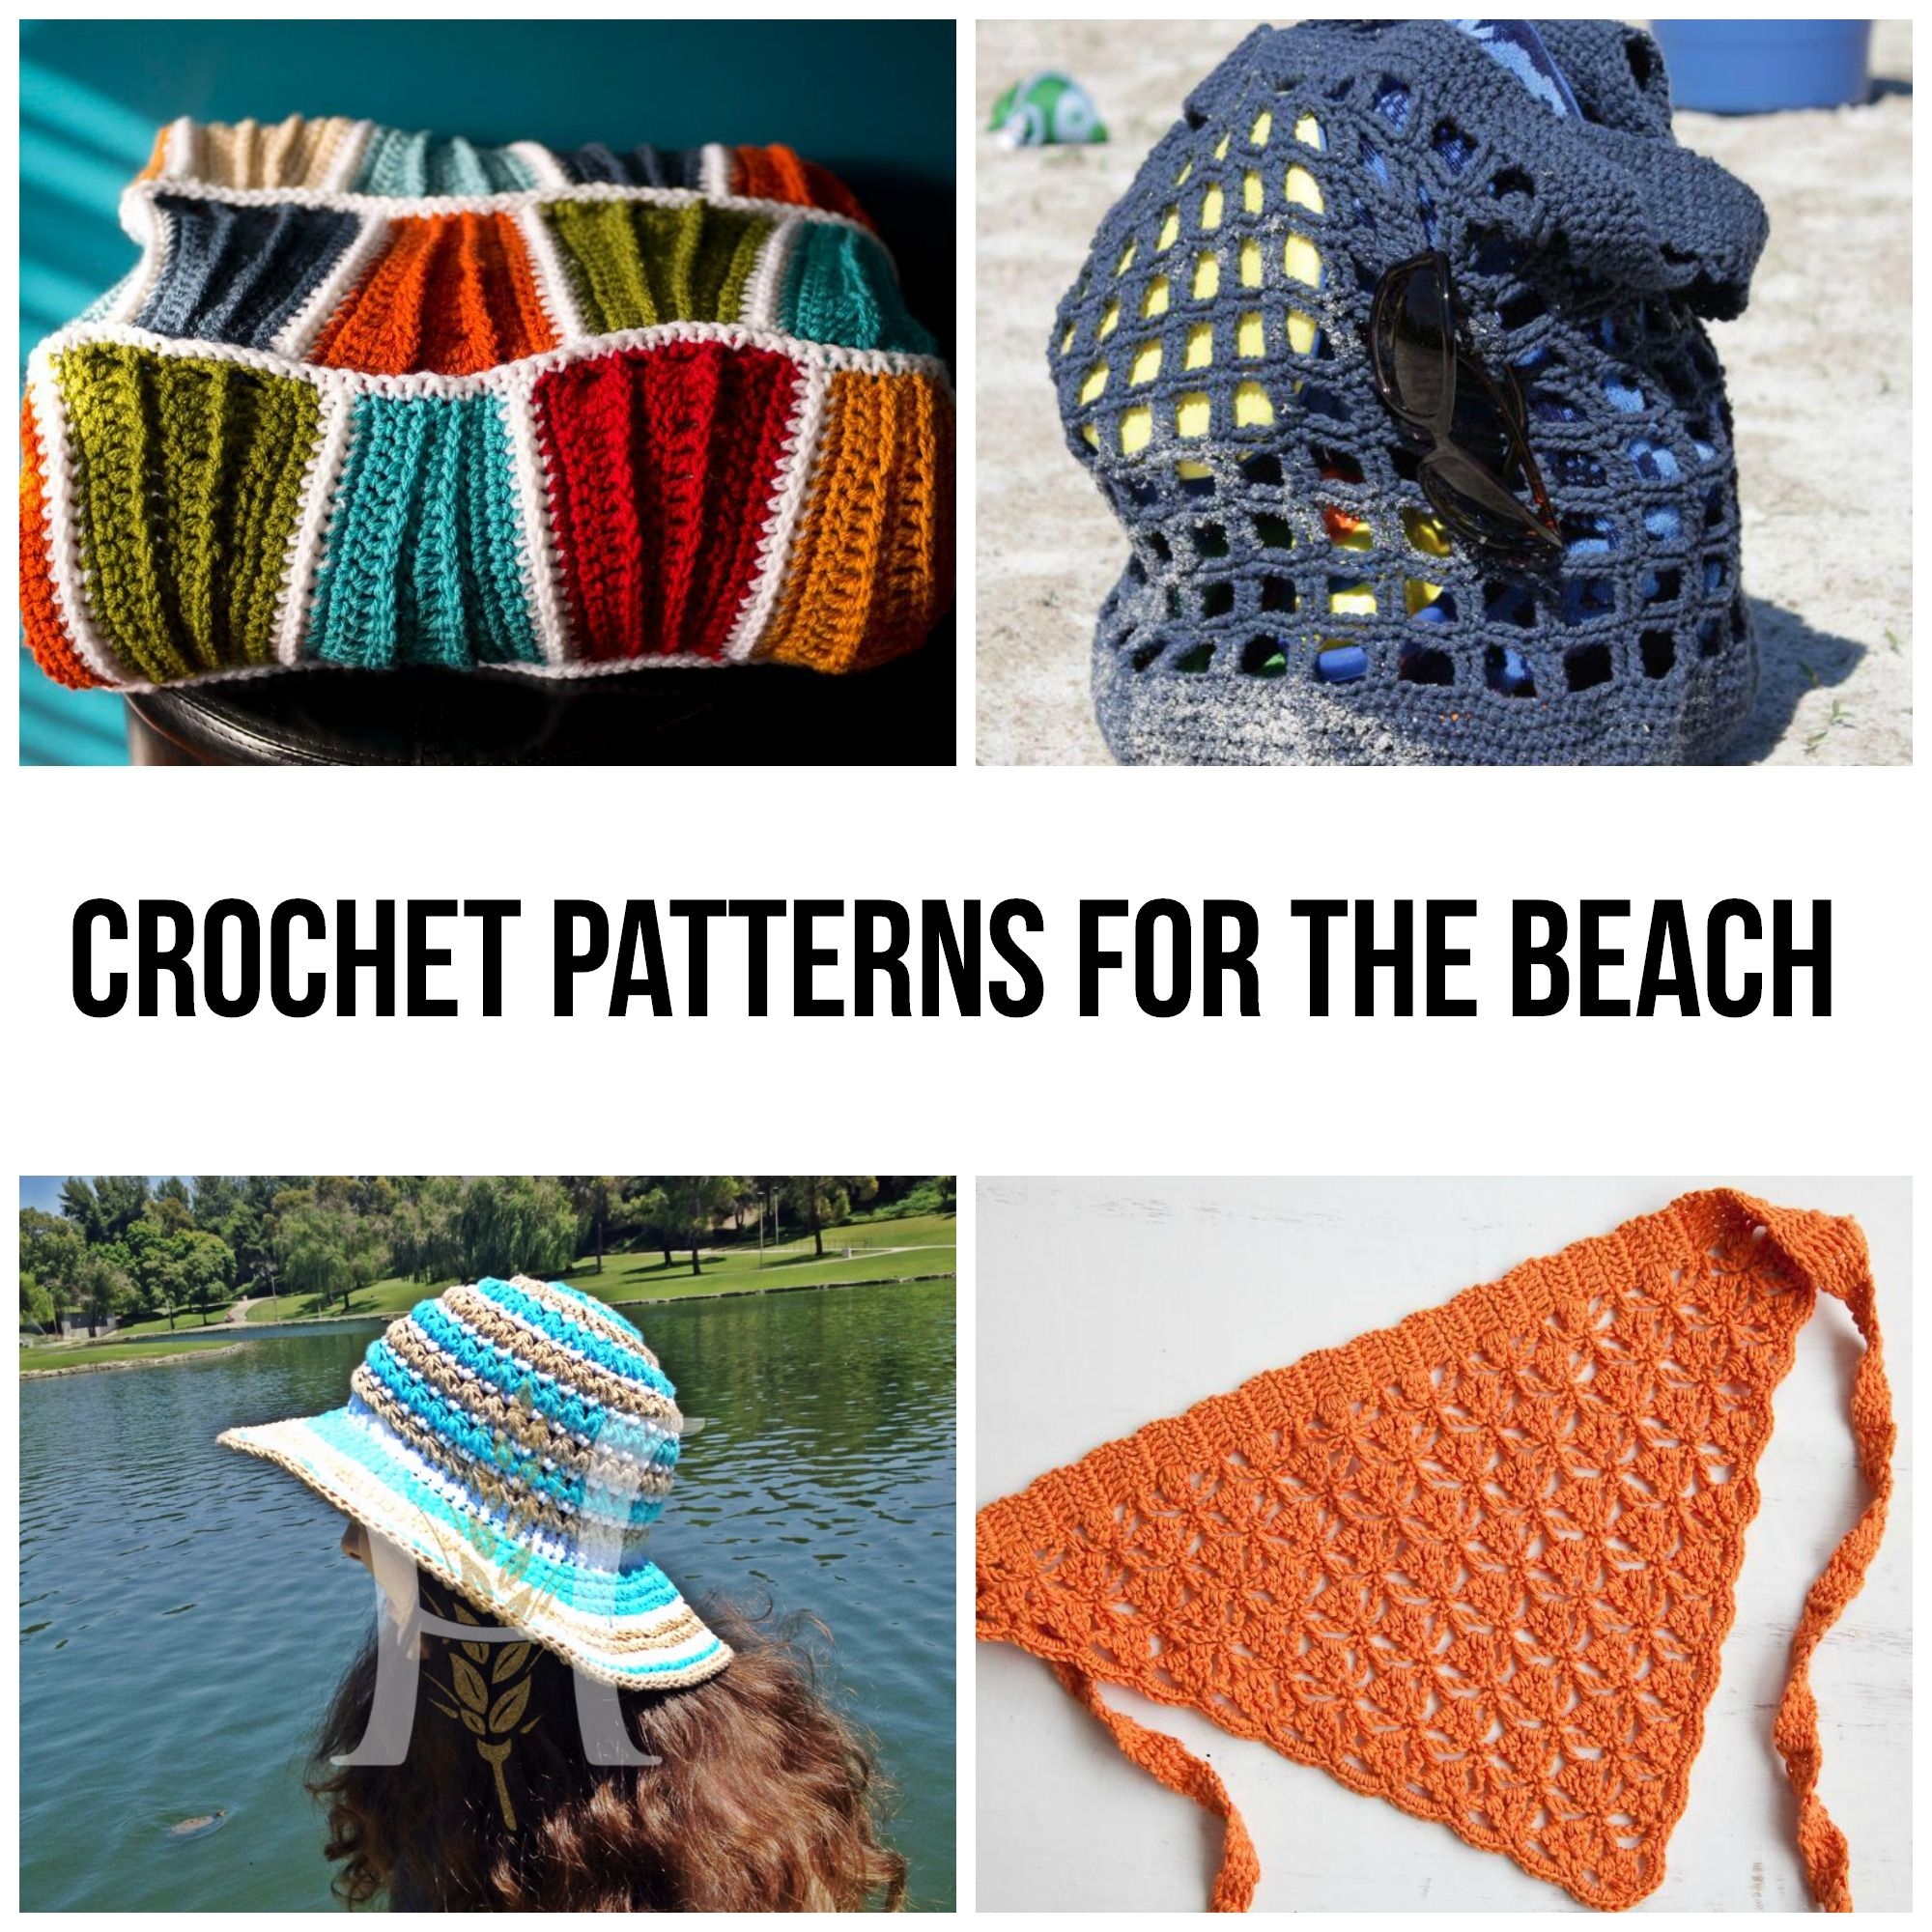 Yarn and sand don't seem like a good match at first, but if you use the right kind of yarn (washable!) then your favorite crochet stitches will fit right in. Hit the beach in style with these sun- and sand-friendly crochet patterns.